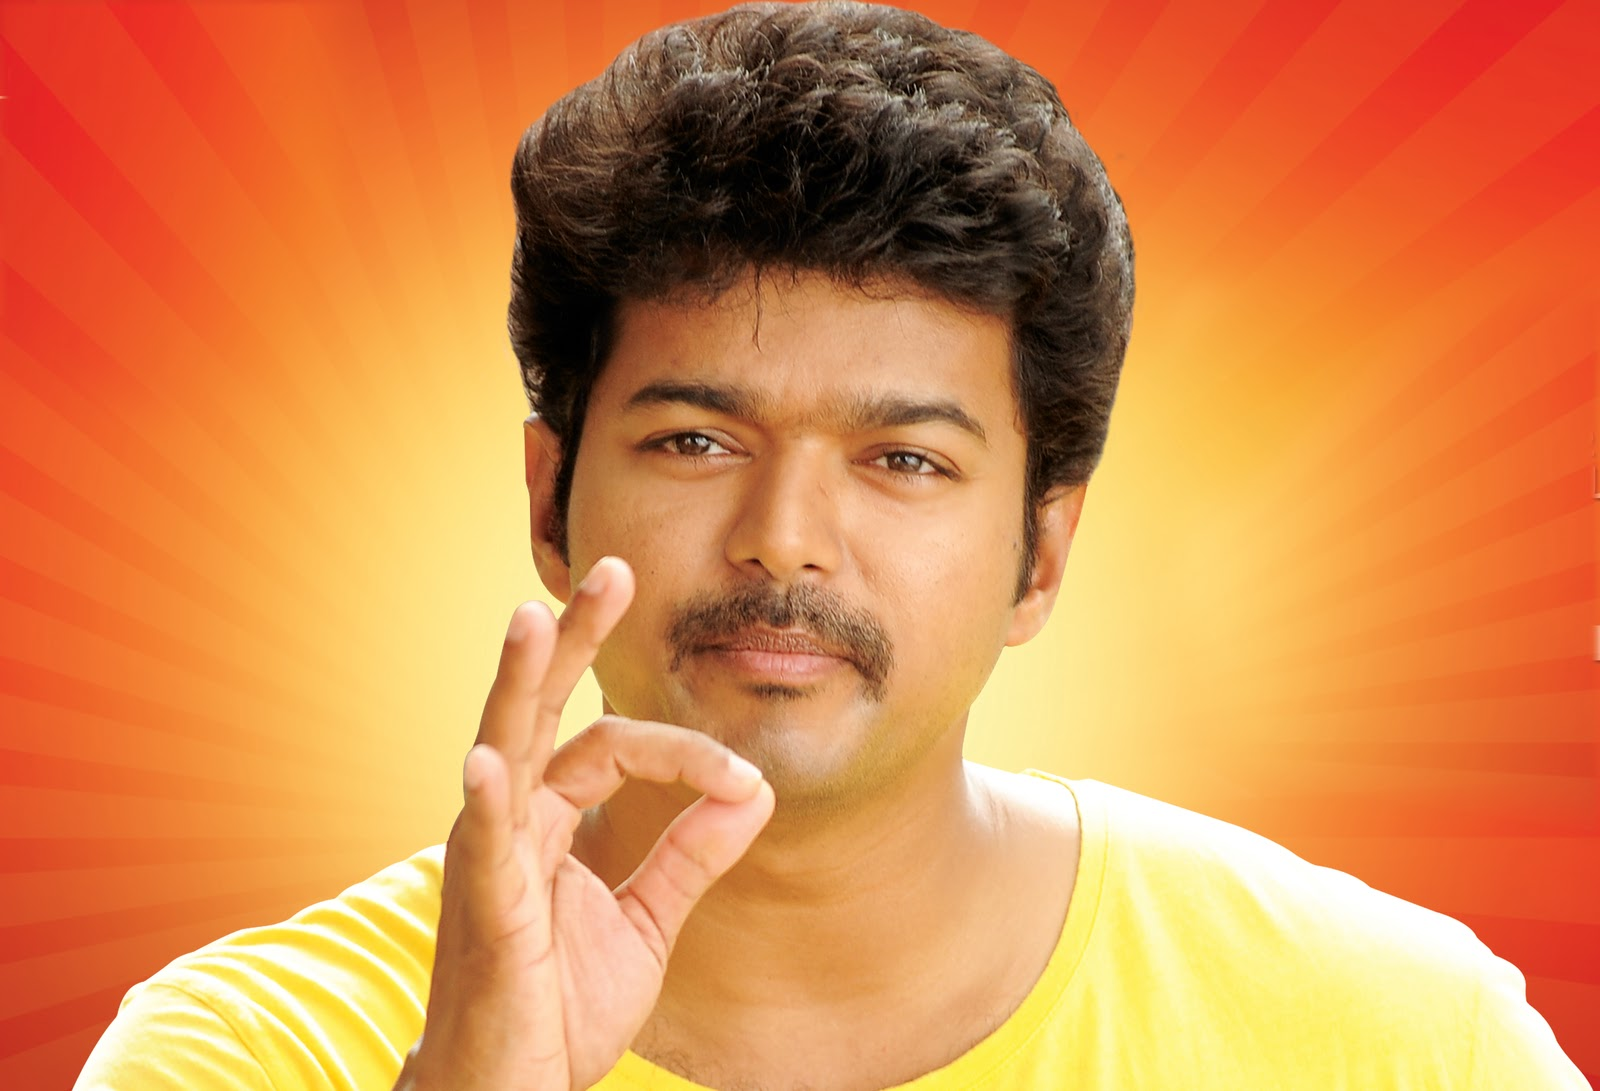 Download Ilayathalapathi Vijay Mobile Desktop Wallpapers Pics